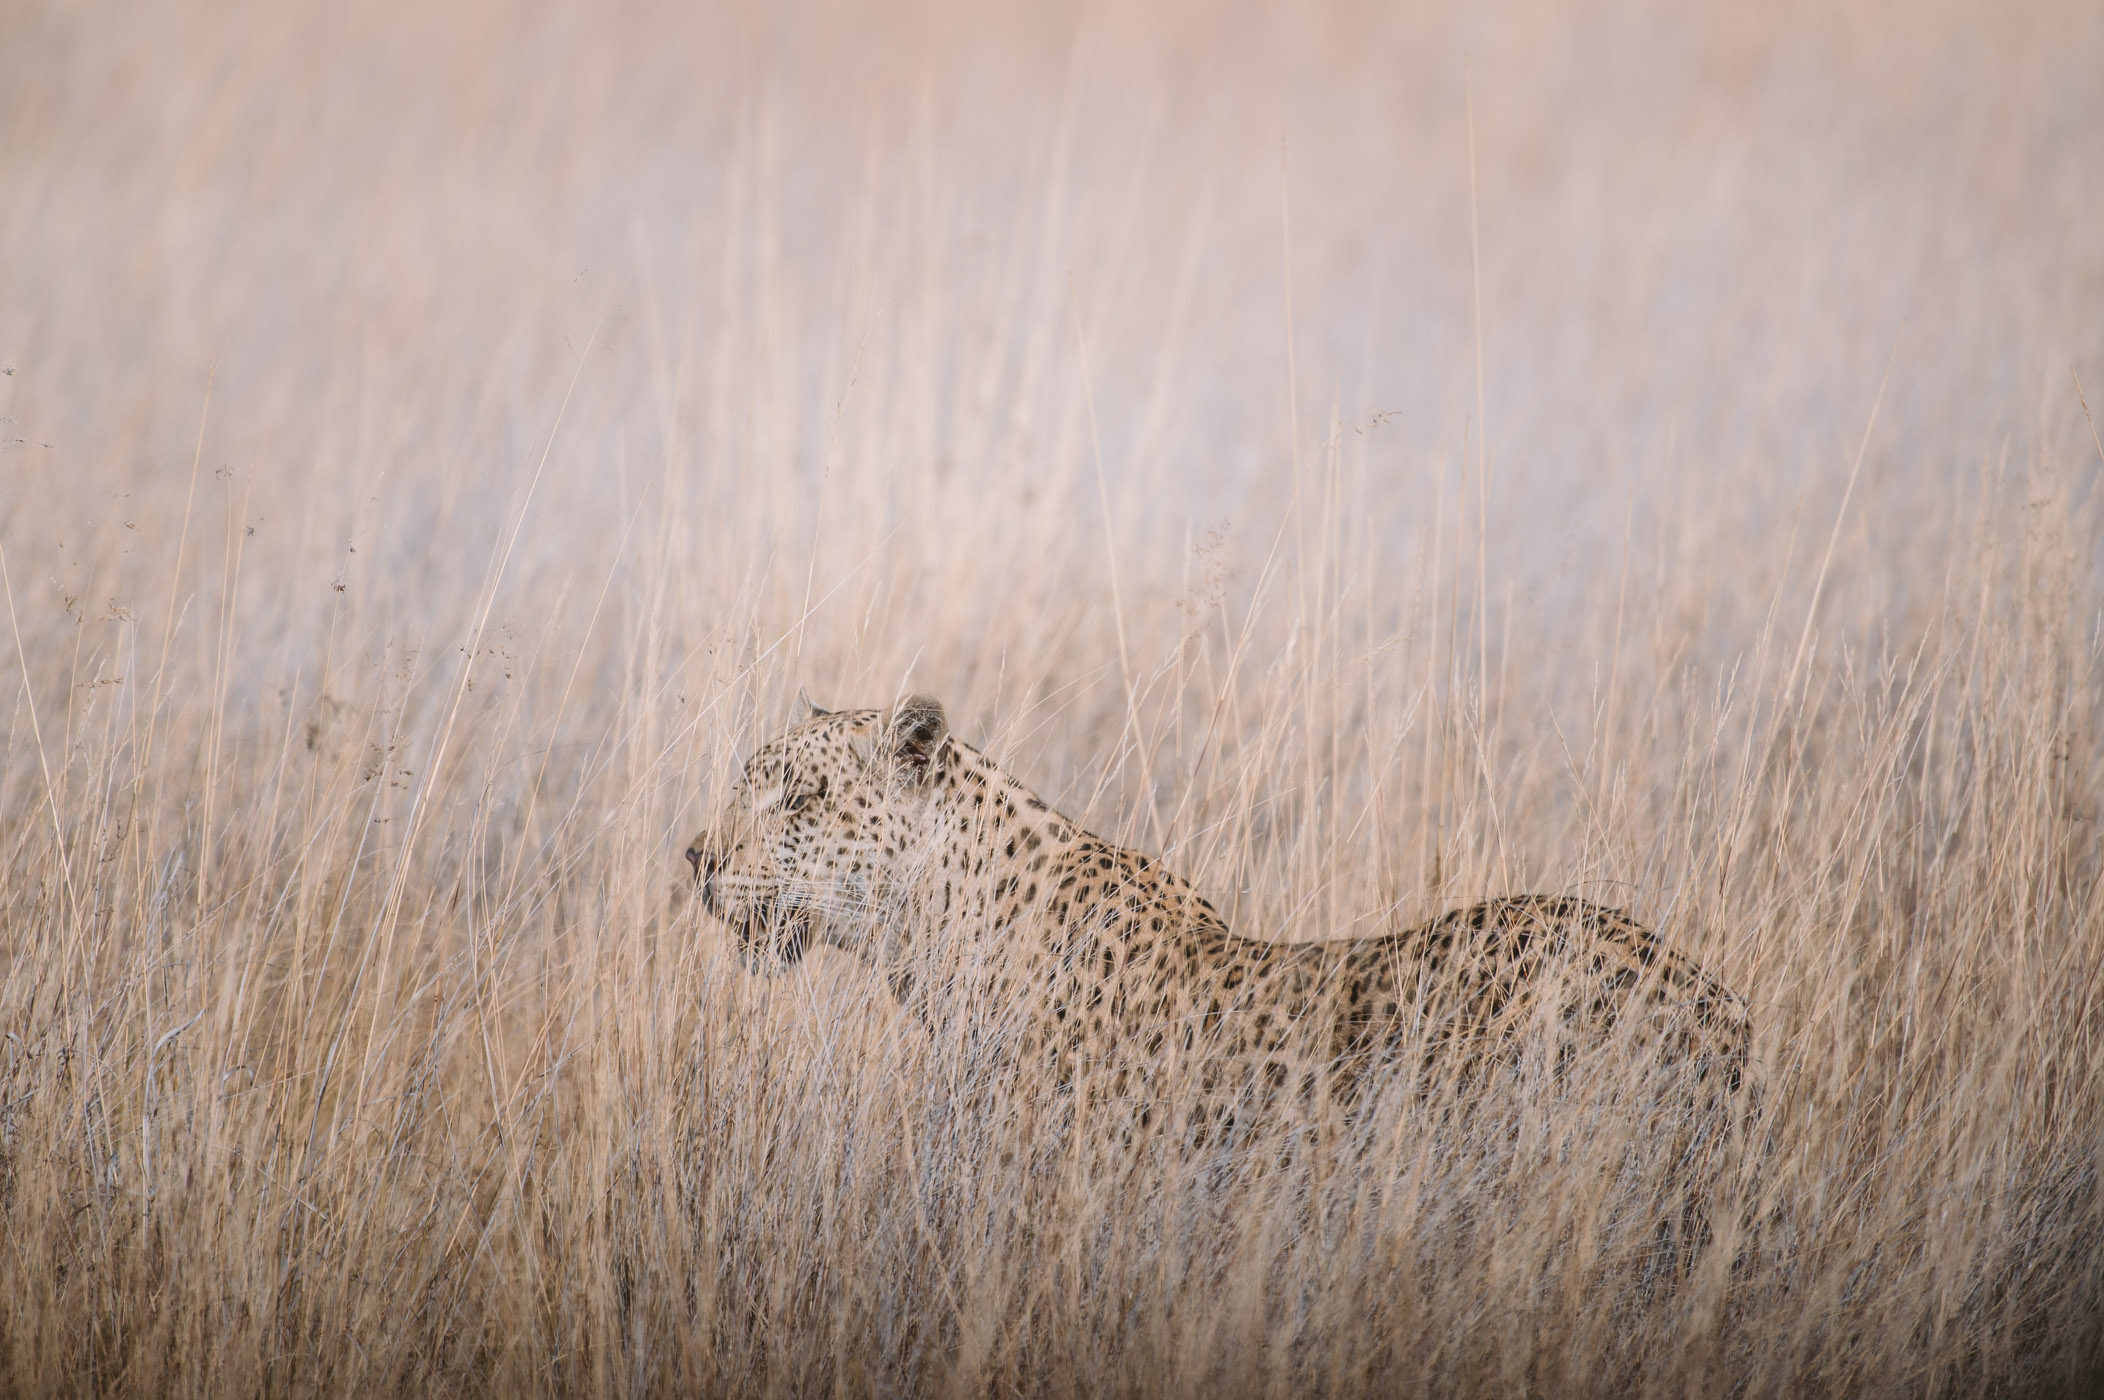 Leopard in the Okavango Delta in Botswana